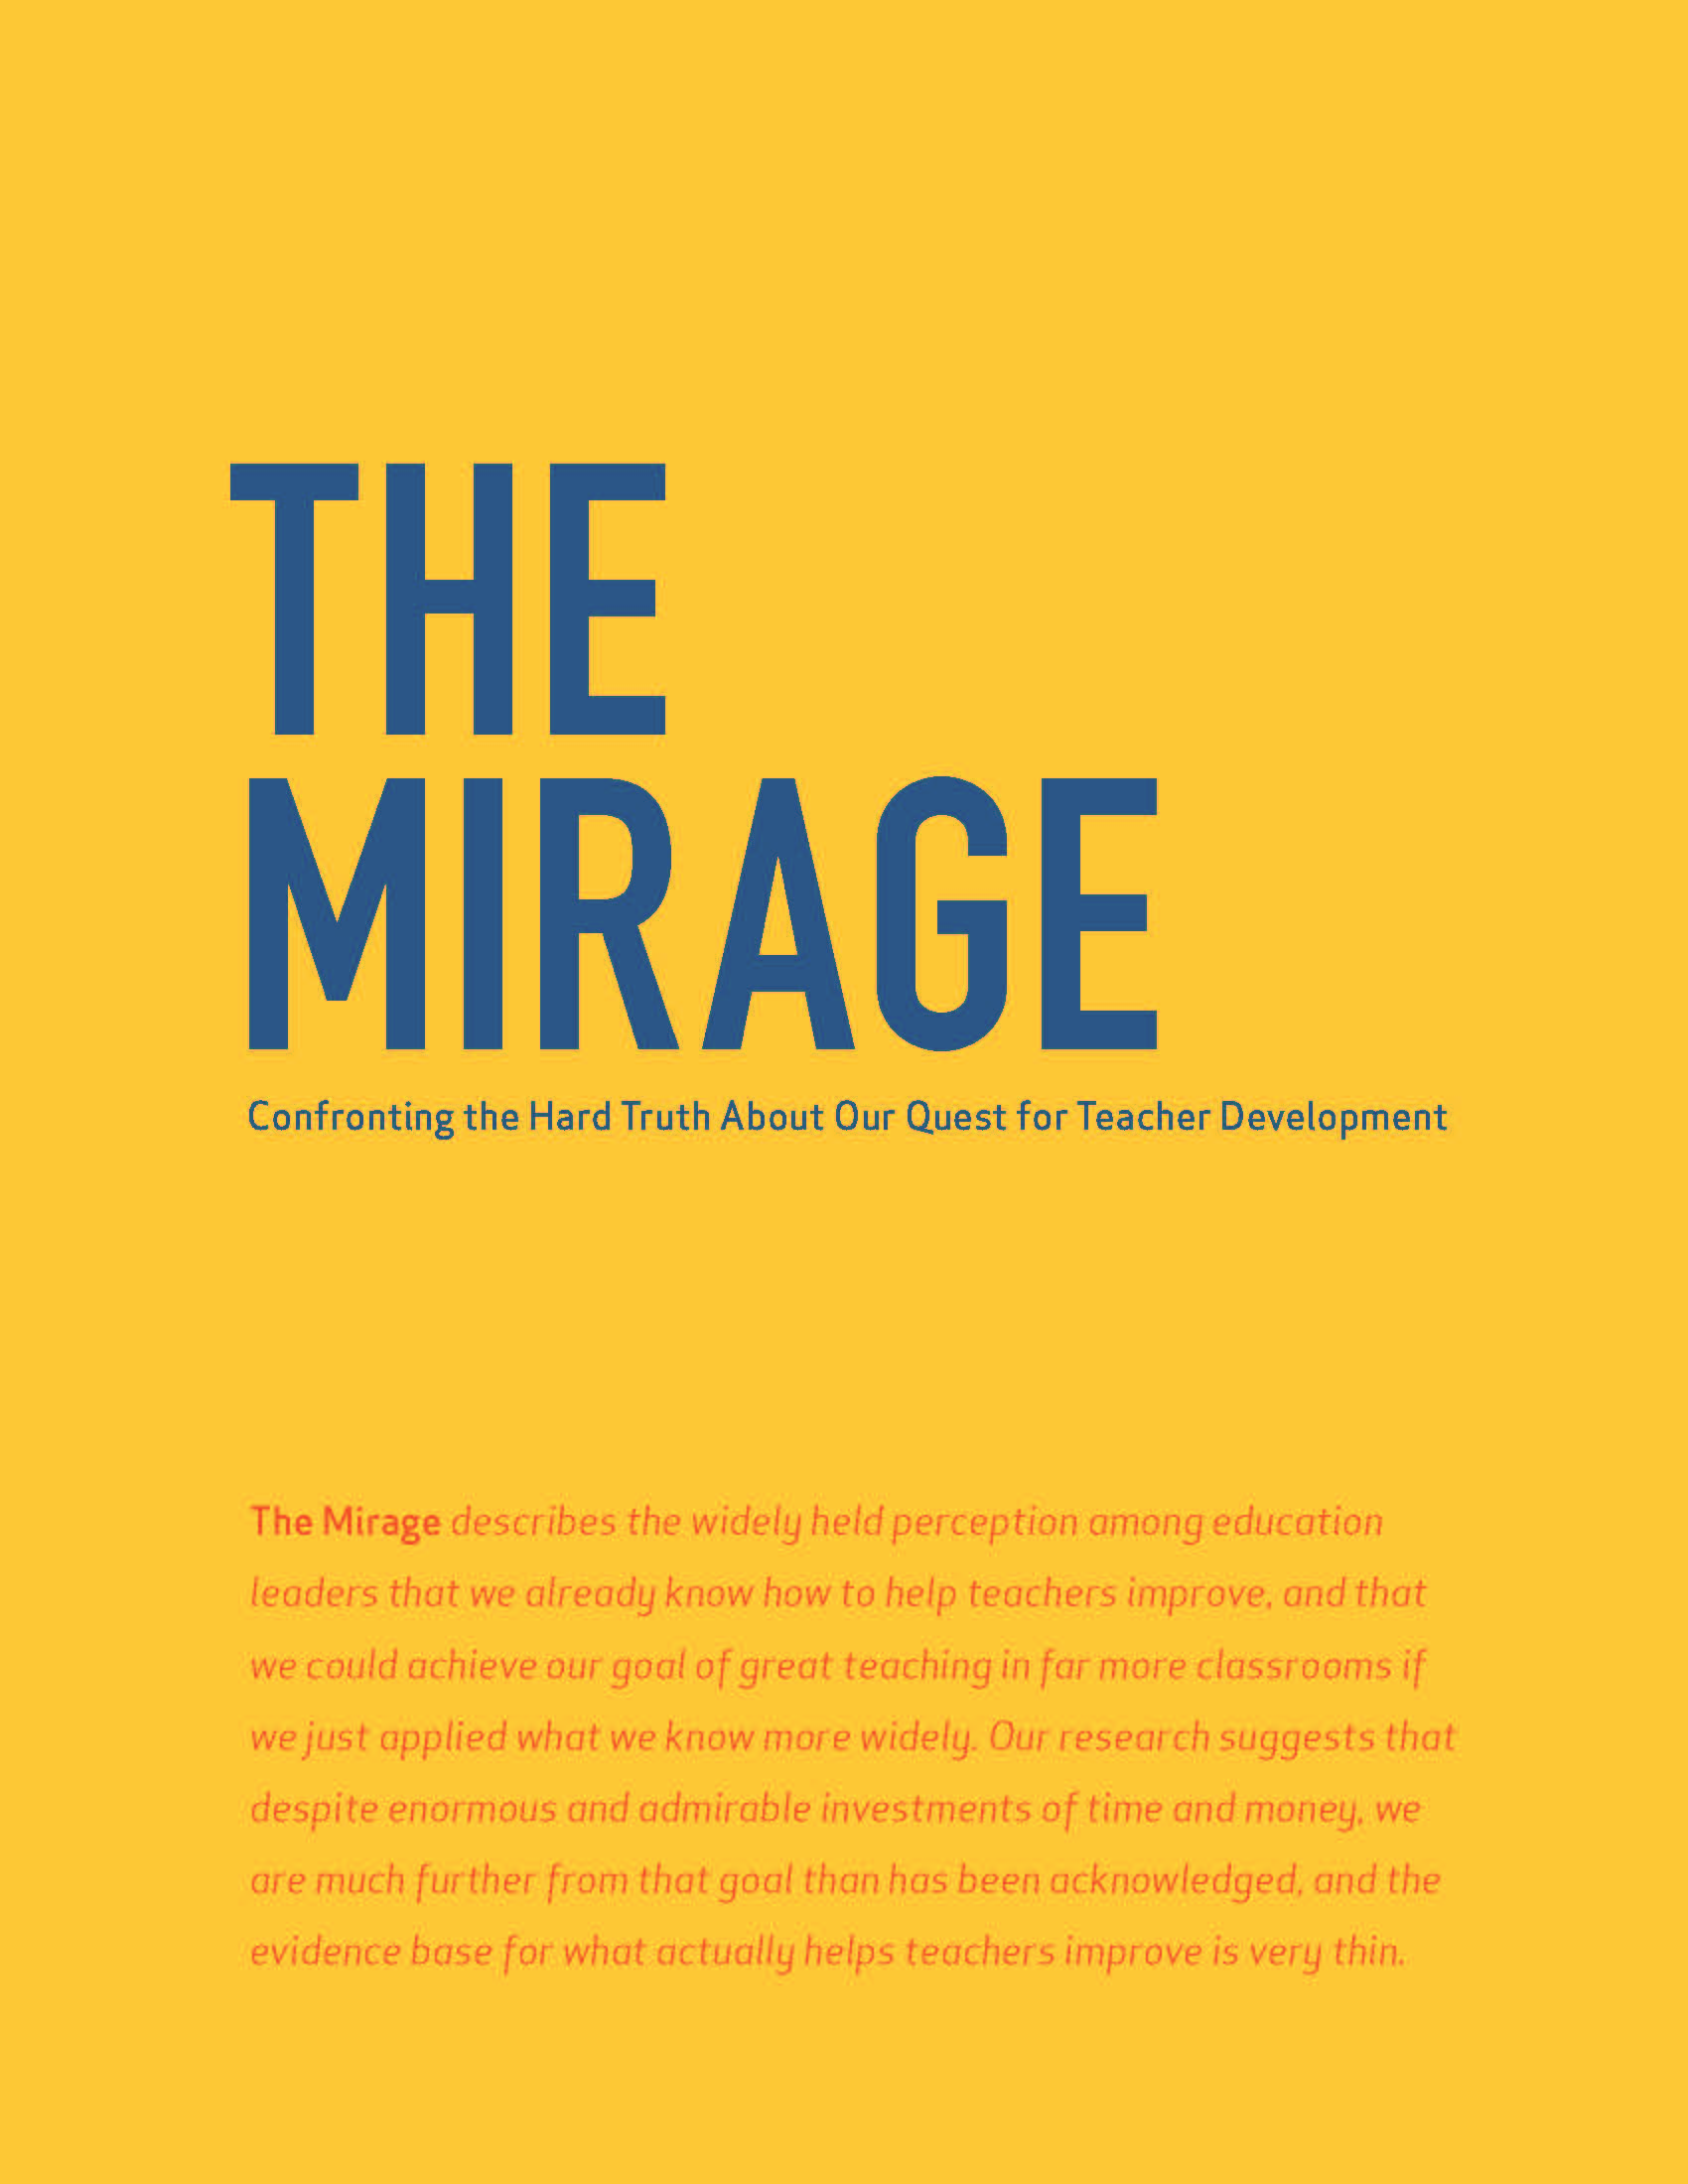 The Mirage describes the widely held perception among education leaders that we already know how to help teachers improve, and that we could achieve our goal of great teaching in far more classrooms if we just applied what we know more widely. Our research suggests that despite enormous and admirable investments of time and money, we are much further from that goal than has been acknowledged, and the evidence base for what actually helps teachers improve is very thin.